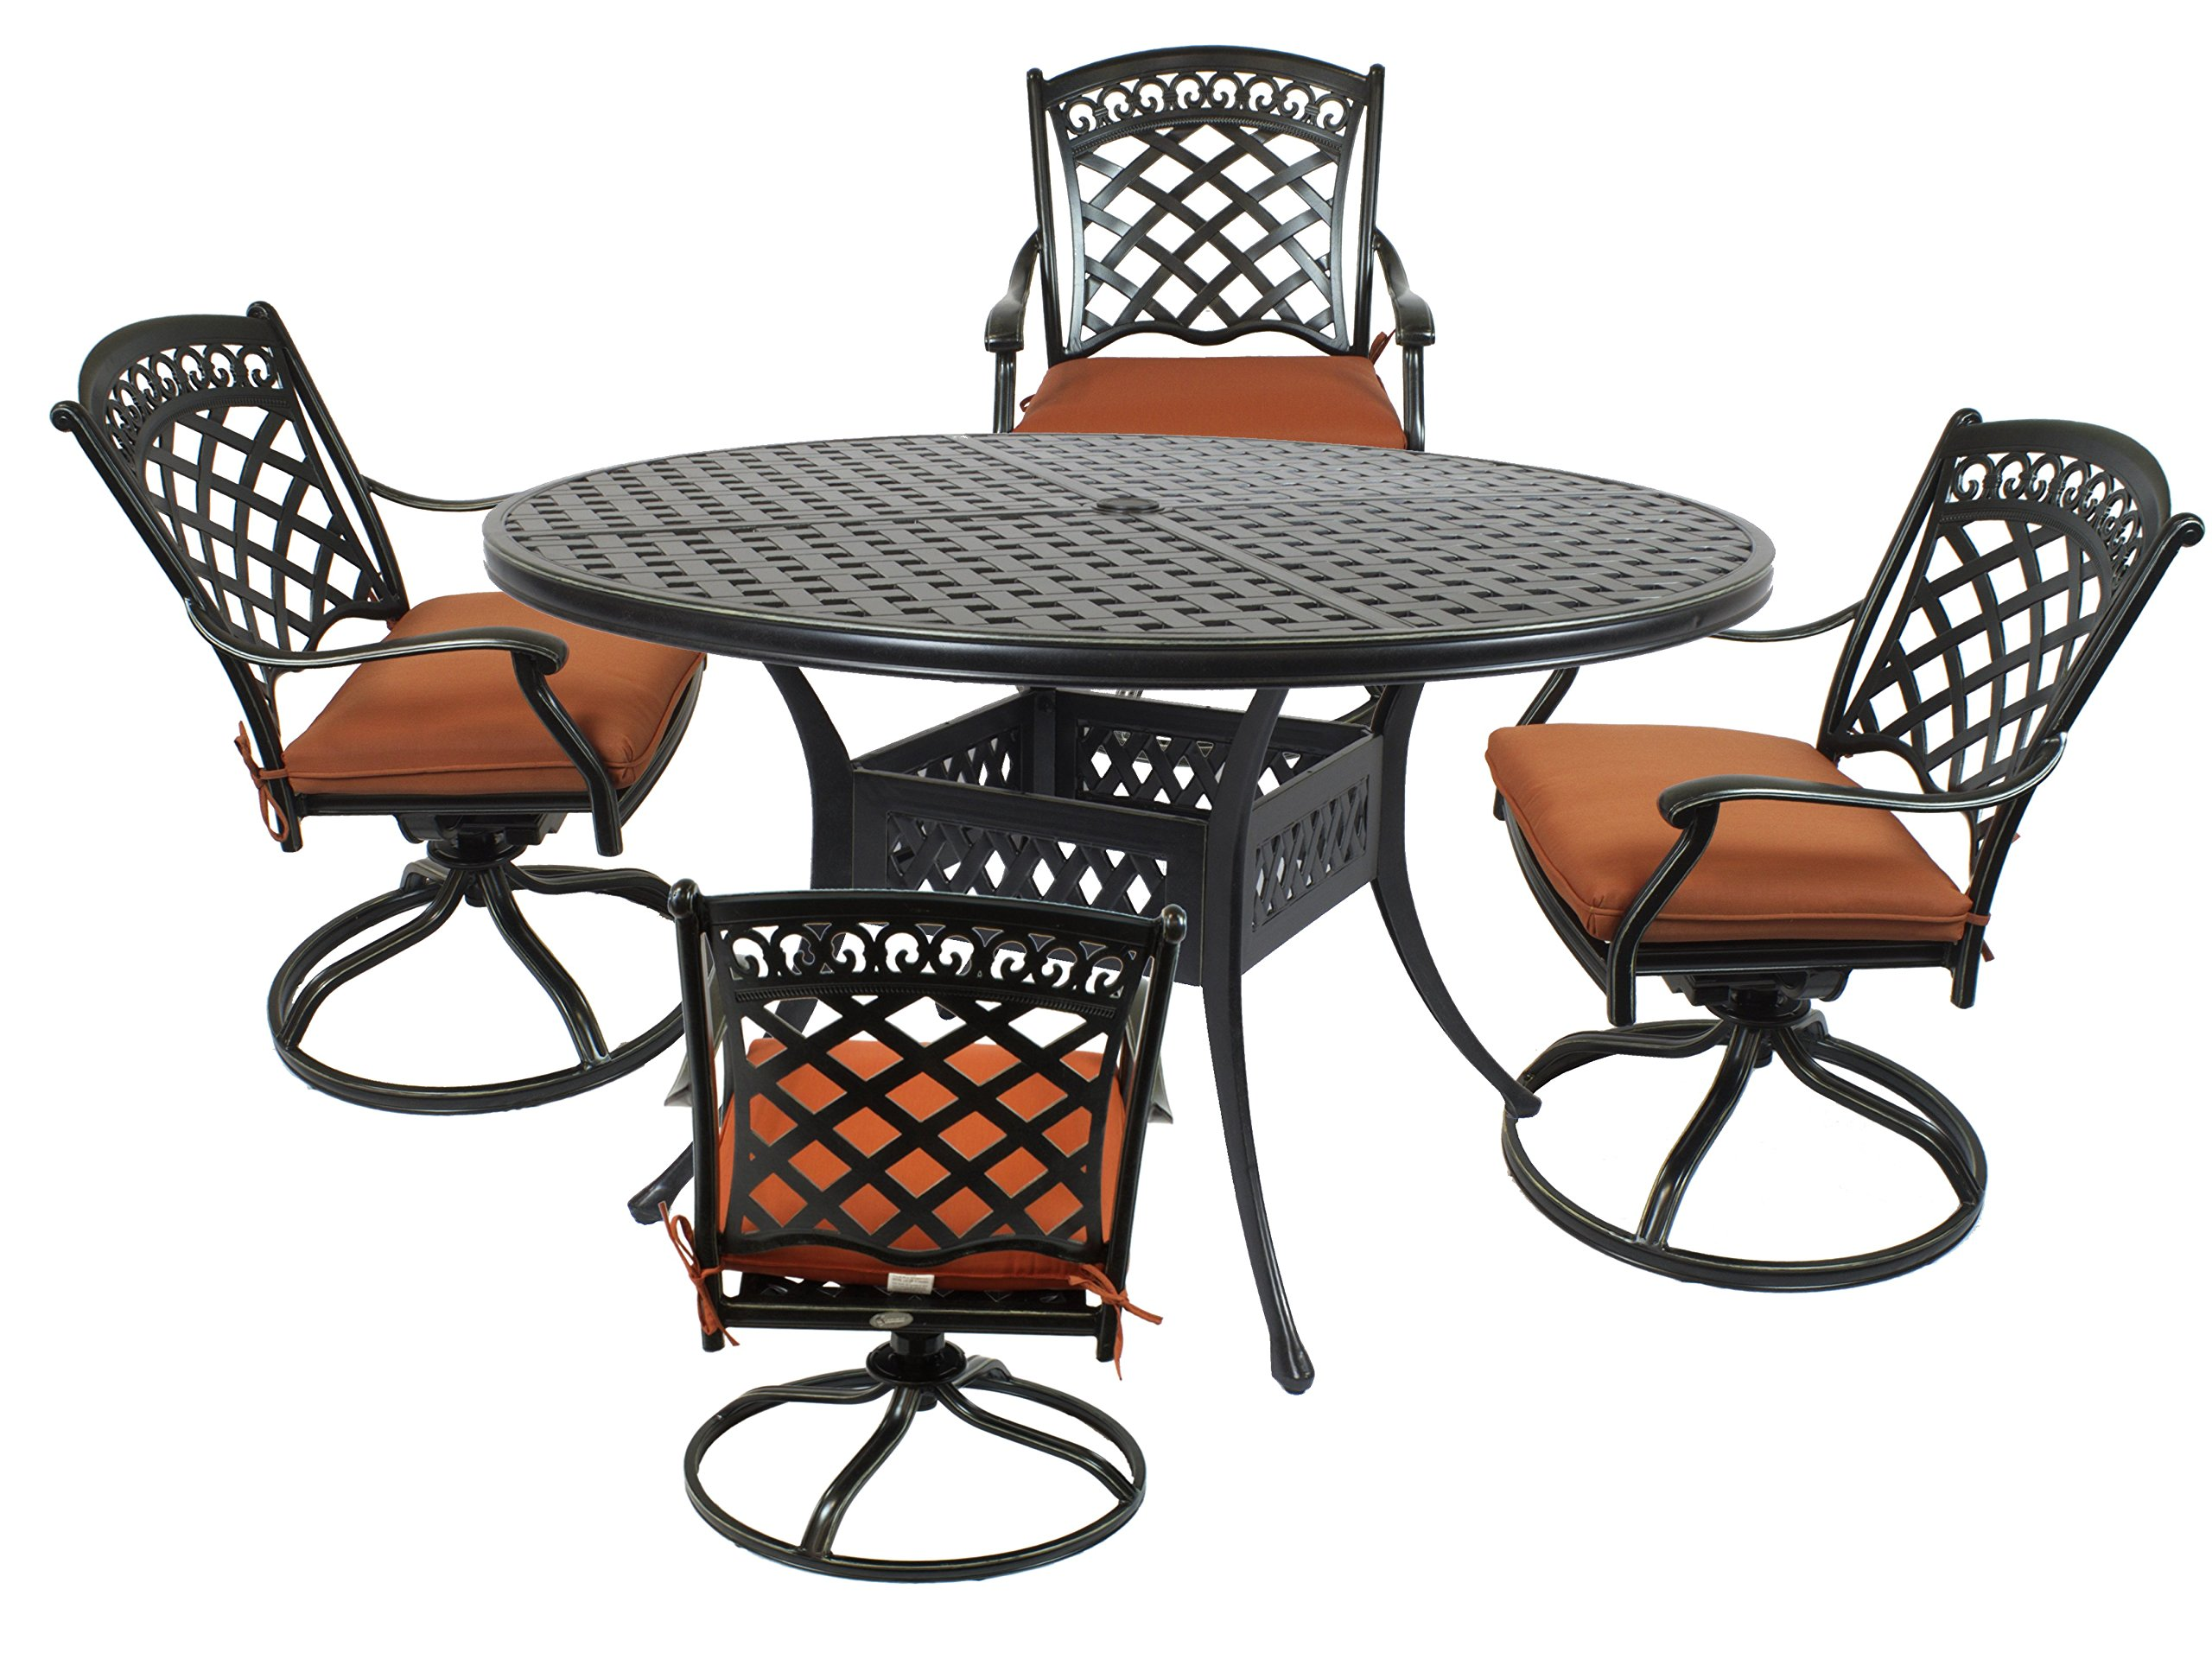 "St. Tropez 5-Piece Cast Aluminum Dining Set with 52"" Round Table, 4 Swivel Rockers and Seat Cushions - Table: 52"" L x 52"" W x 29.5"" H; Chair: 25"" D x 24"" W x 36"" H; Seat Height: 17"", Arm Height: 26"". Constructed with sturdy powder coated cast aluminum metal 3"" thick Terracotta colored cushions with optimal comfort and relaxation - patio-furniture, dining-sets-patio-funiture, patio - 81uVfLEEjwL -"